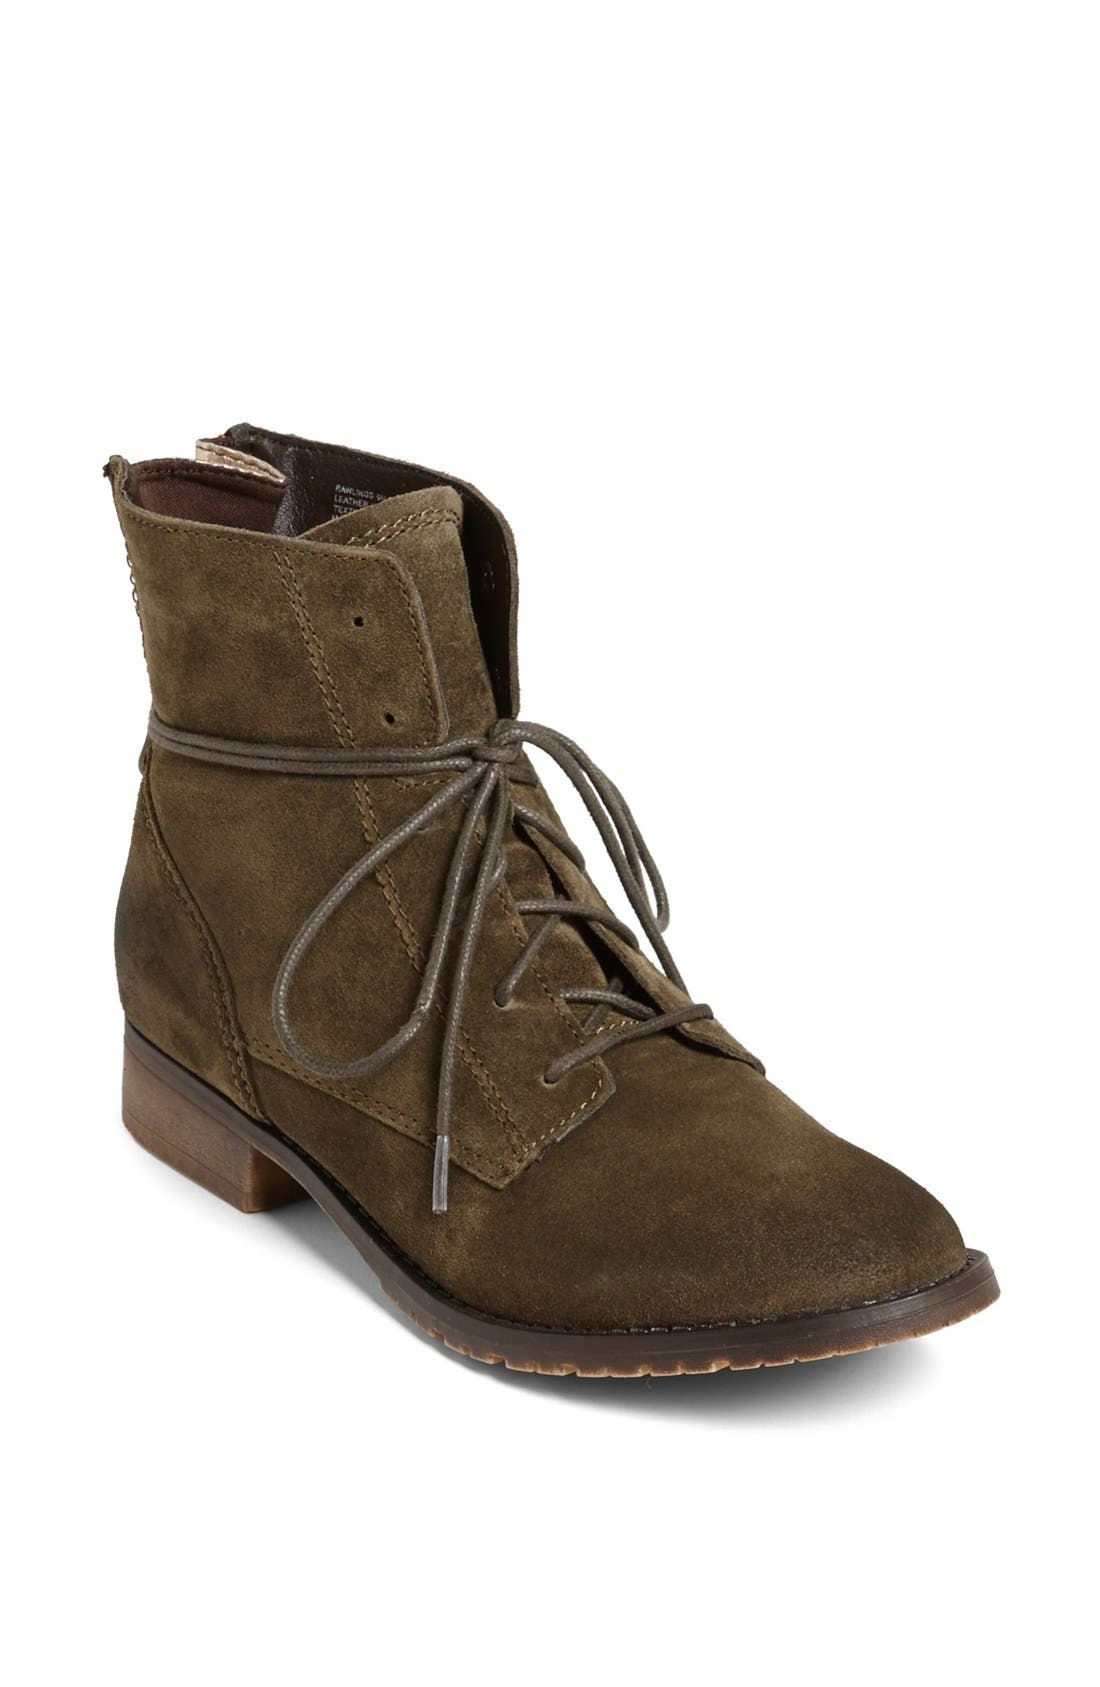 Alternate Image 1 Selected - Steve Madden 'Rawlings' Bootie (Online Exclusive Color)